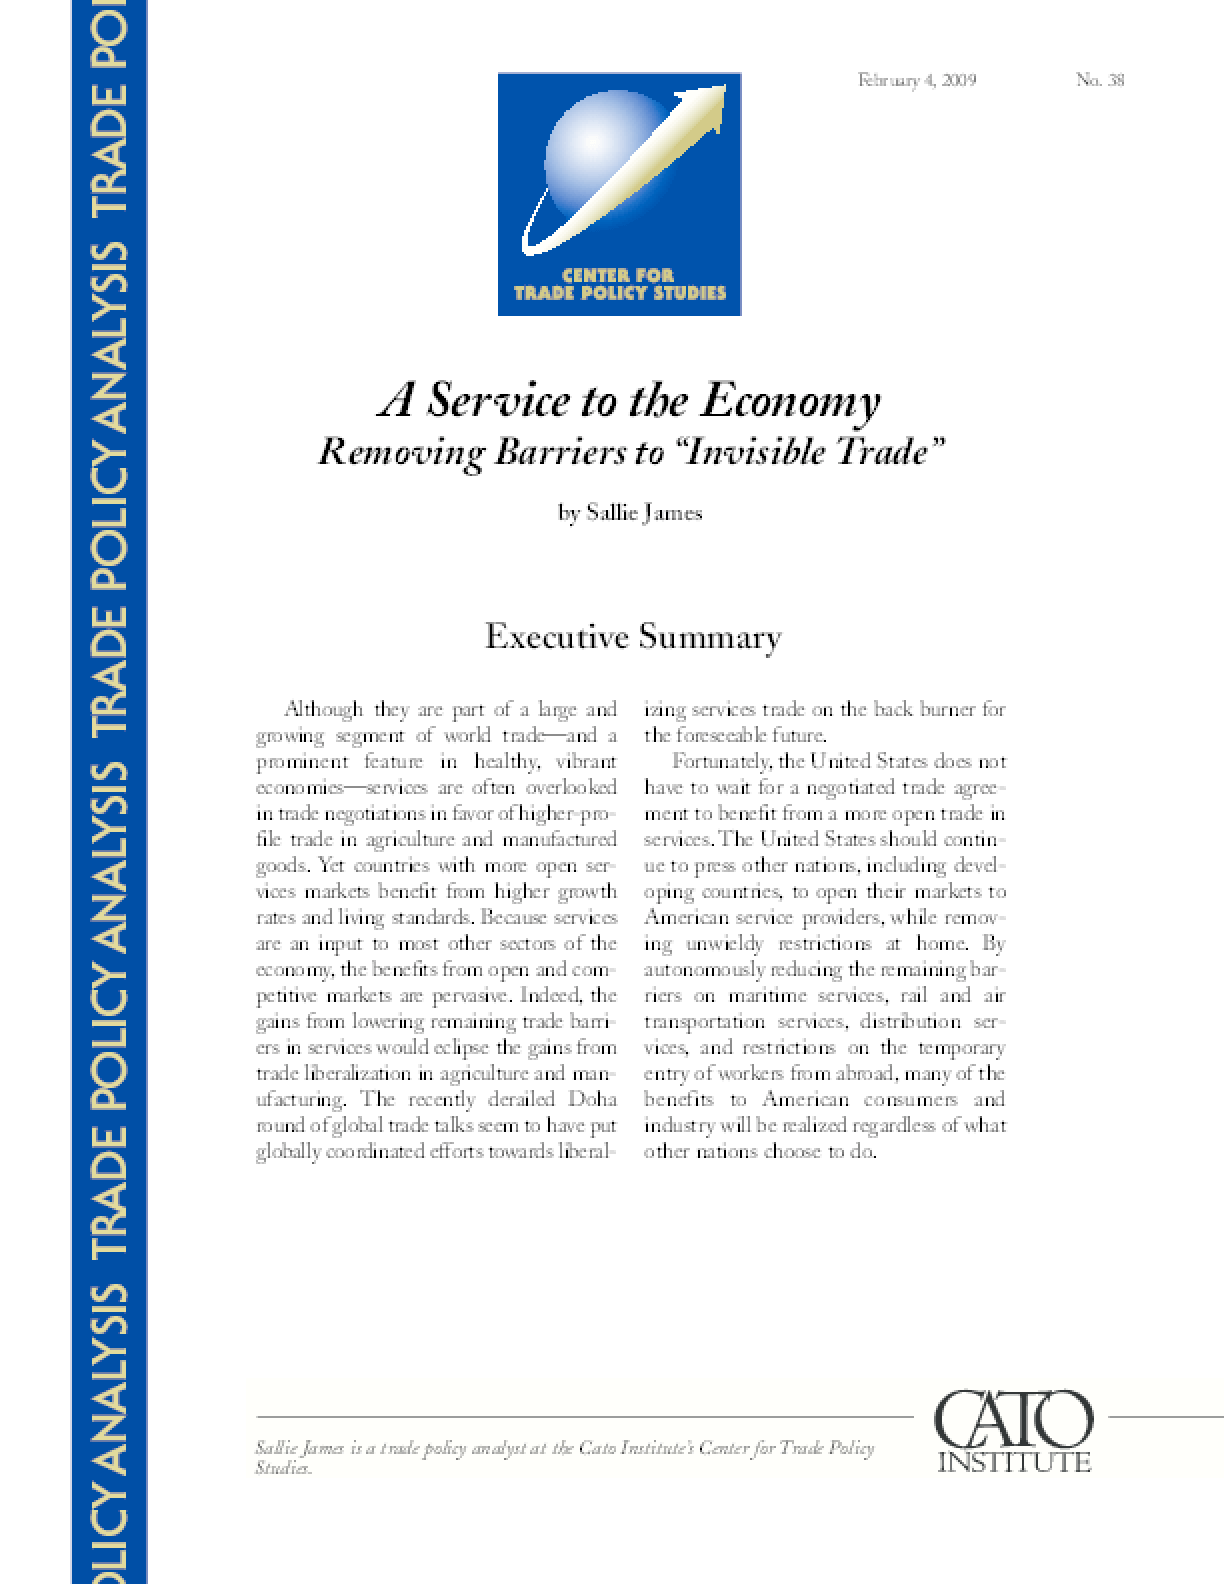 Service to the Economy: Removing Barriers to